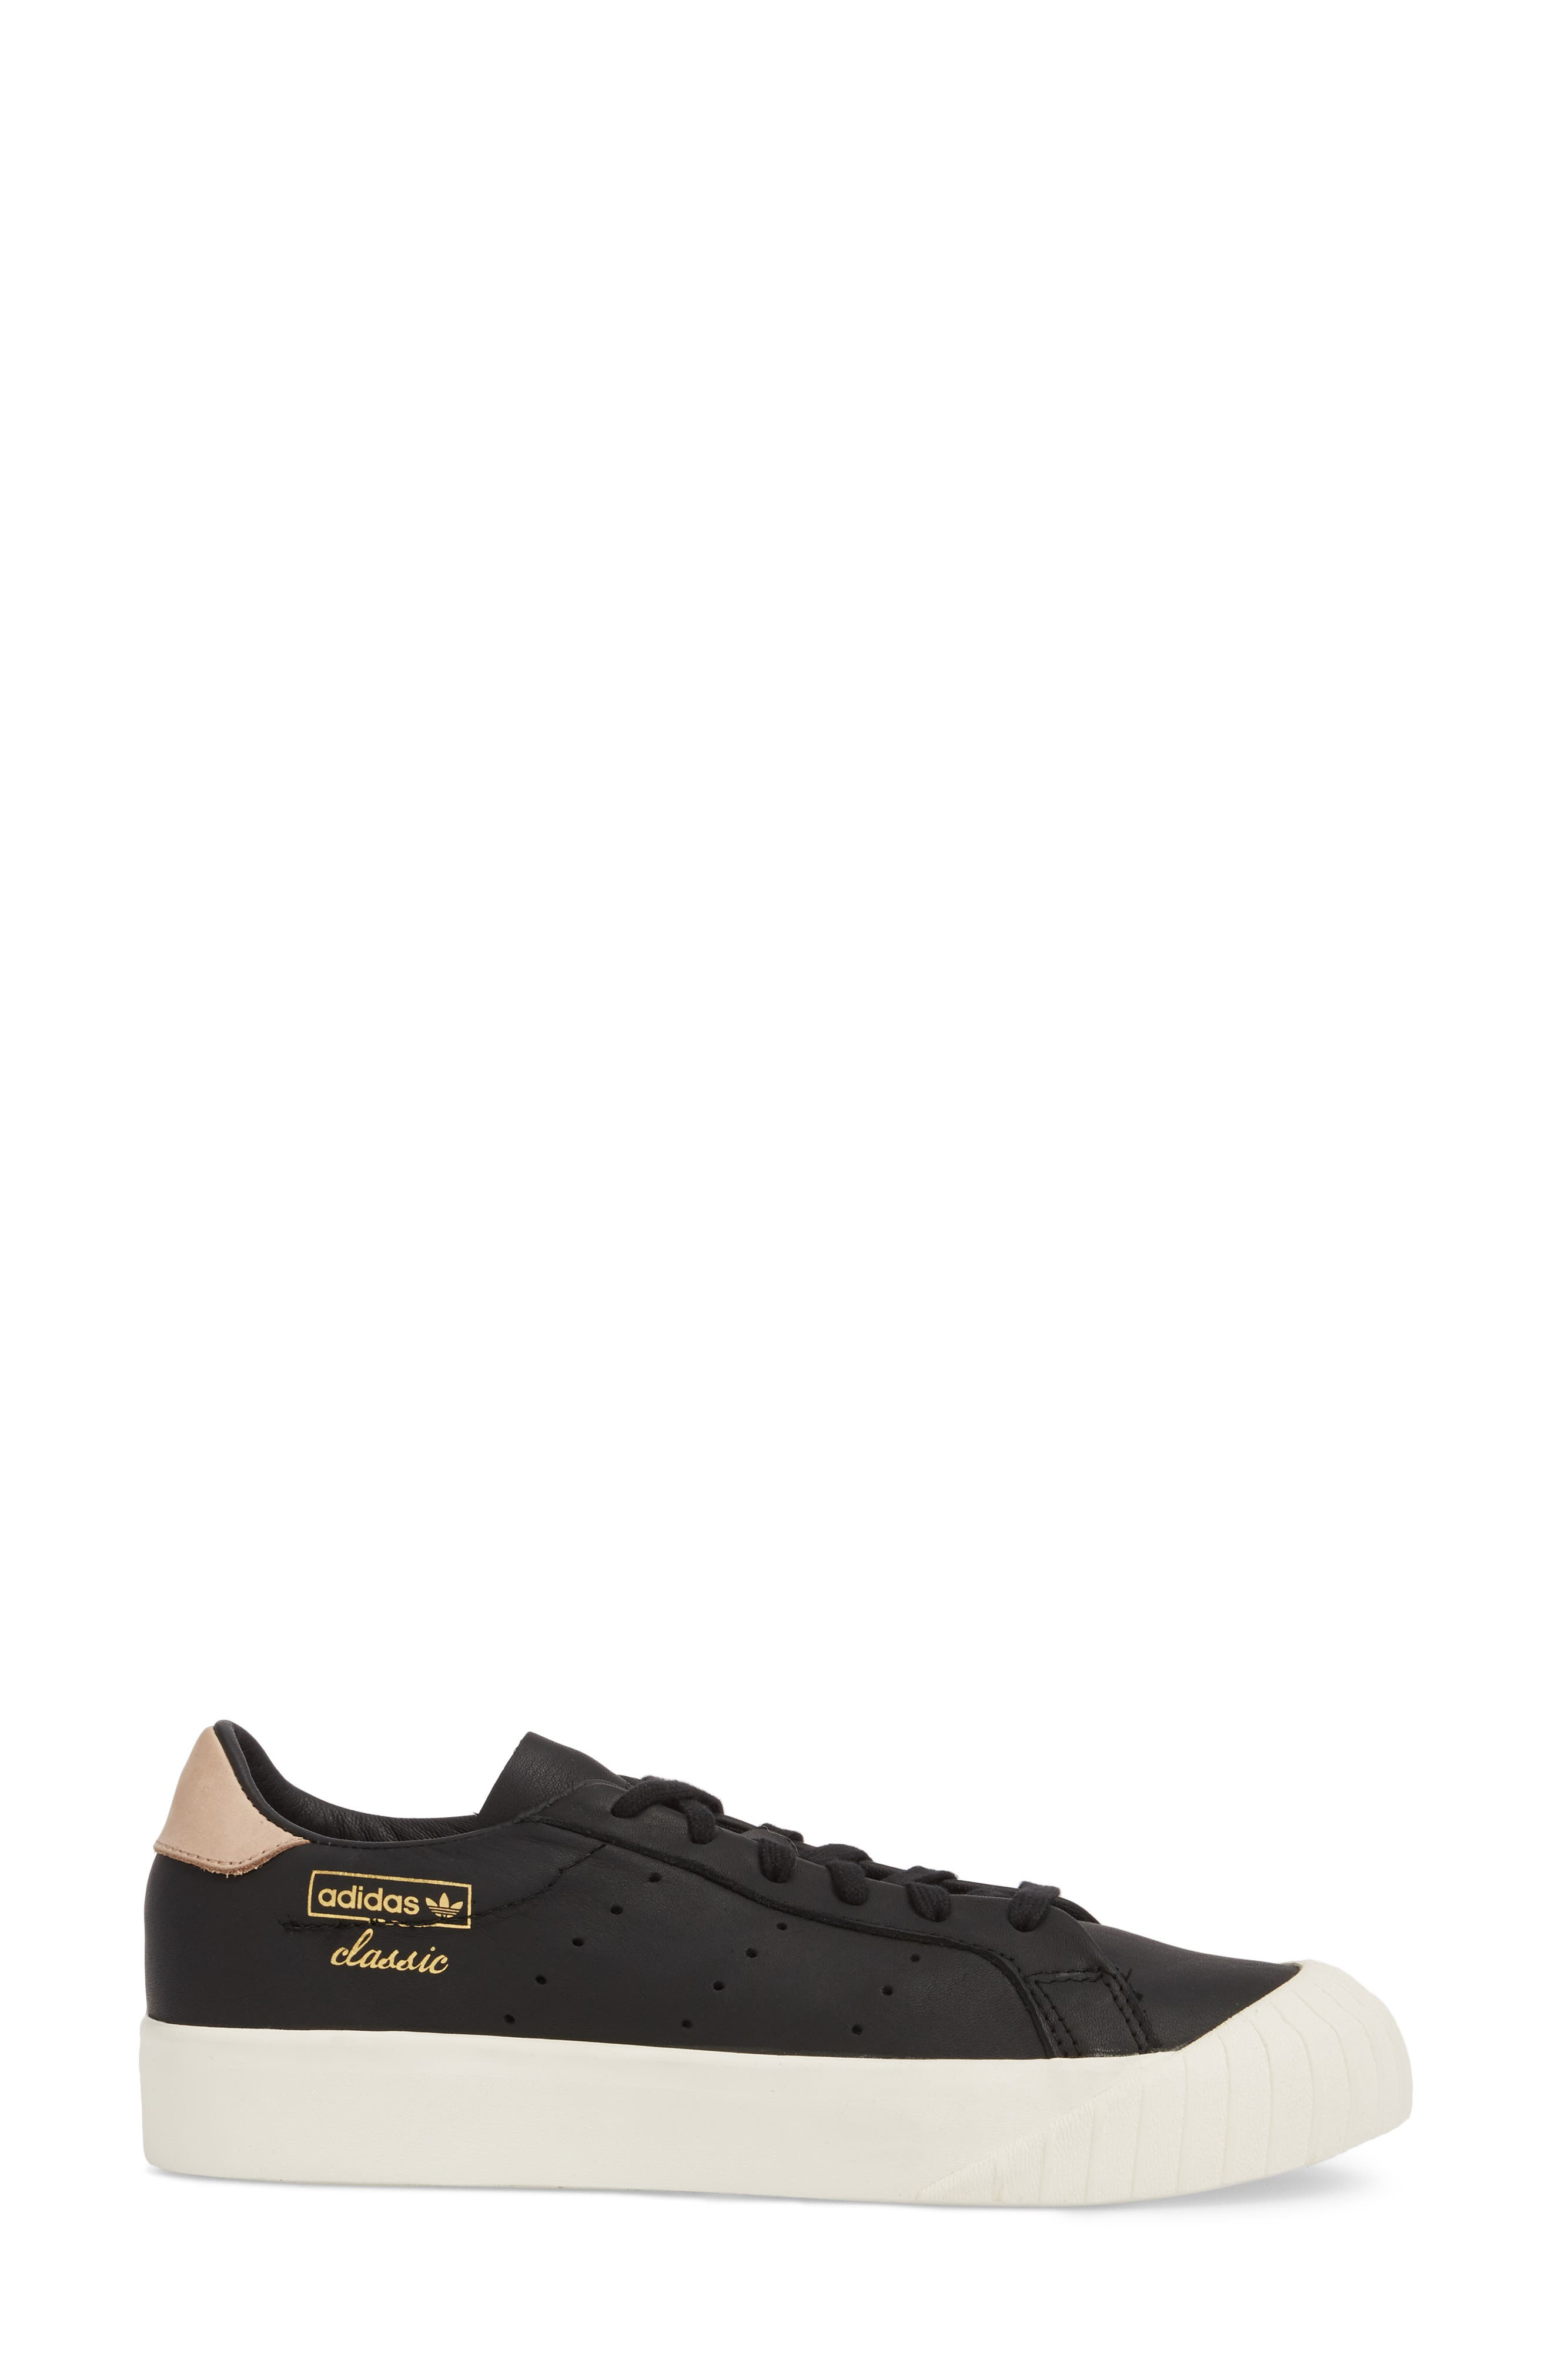 Everyn Perforated Low Top Sneaker,                             Alternate thumbnail 3, color,                             001